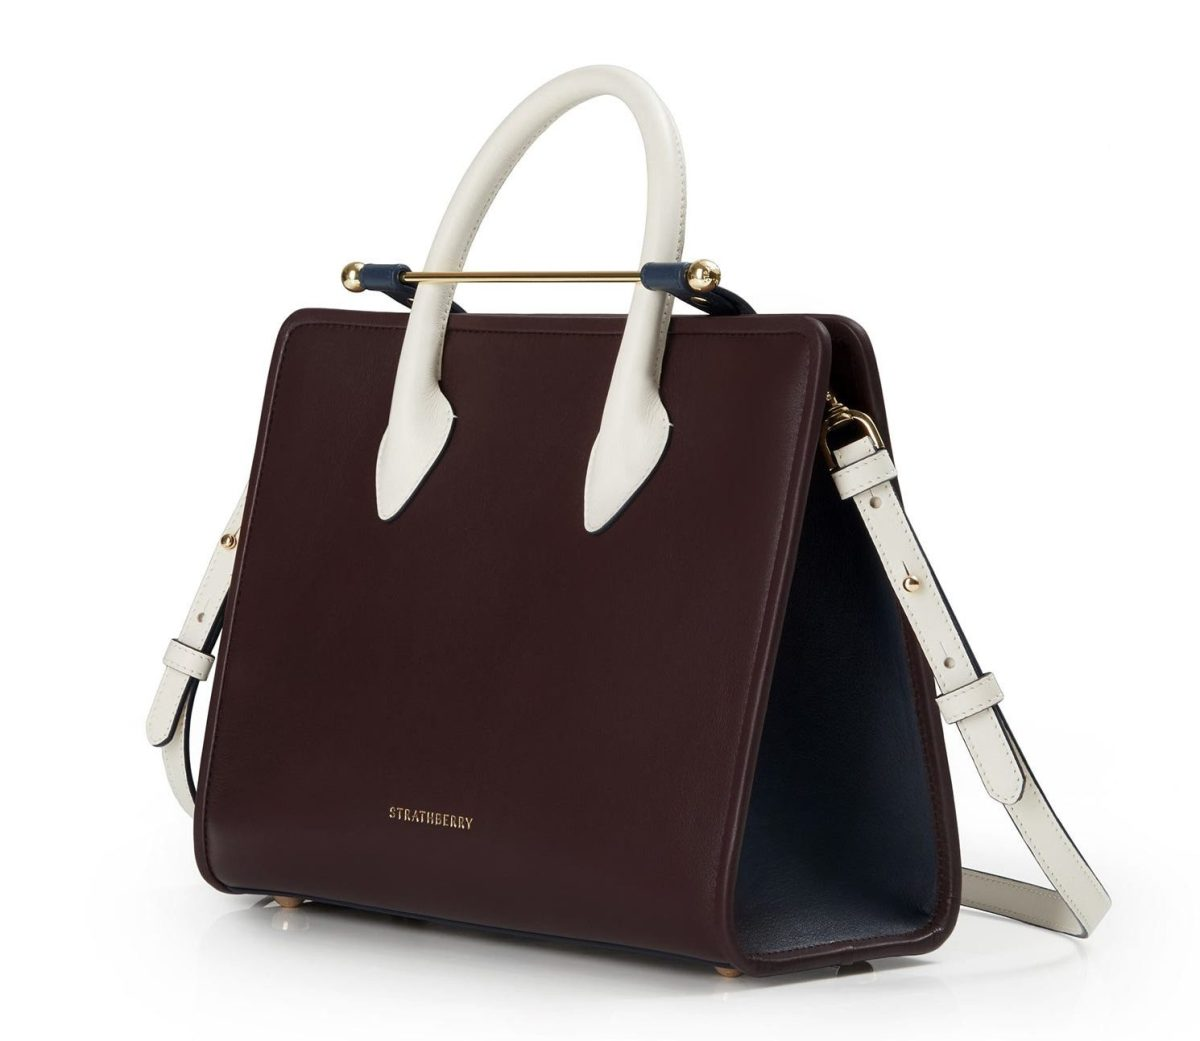 n4wDwS2TR6Ss2x62Wsmf_The-Strathberry-Midi-Tote-Tri-Colour-Burgundy_Navy_Vanilla